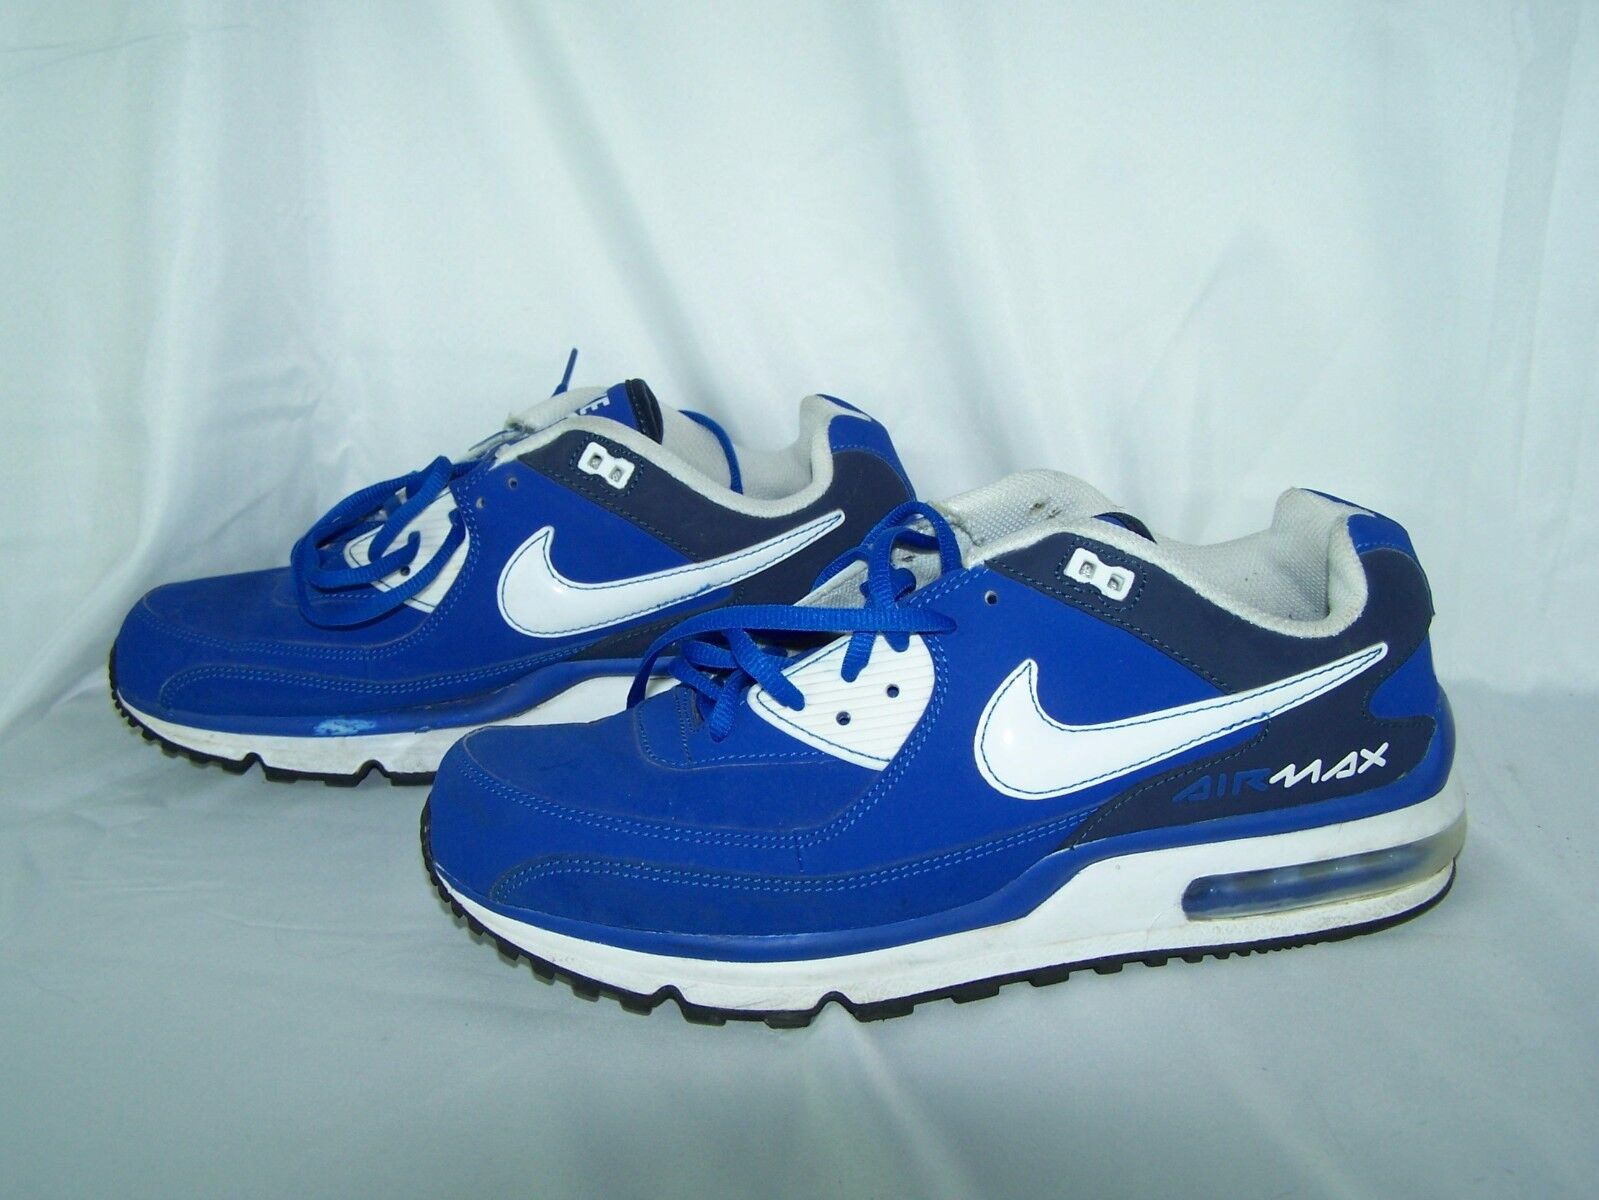 Nike Air Max size 10 Royal bluee White shoes Sneakers